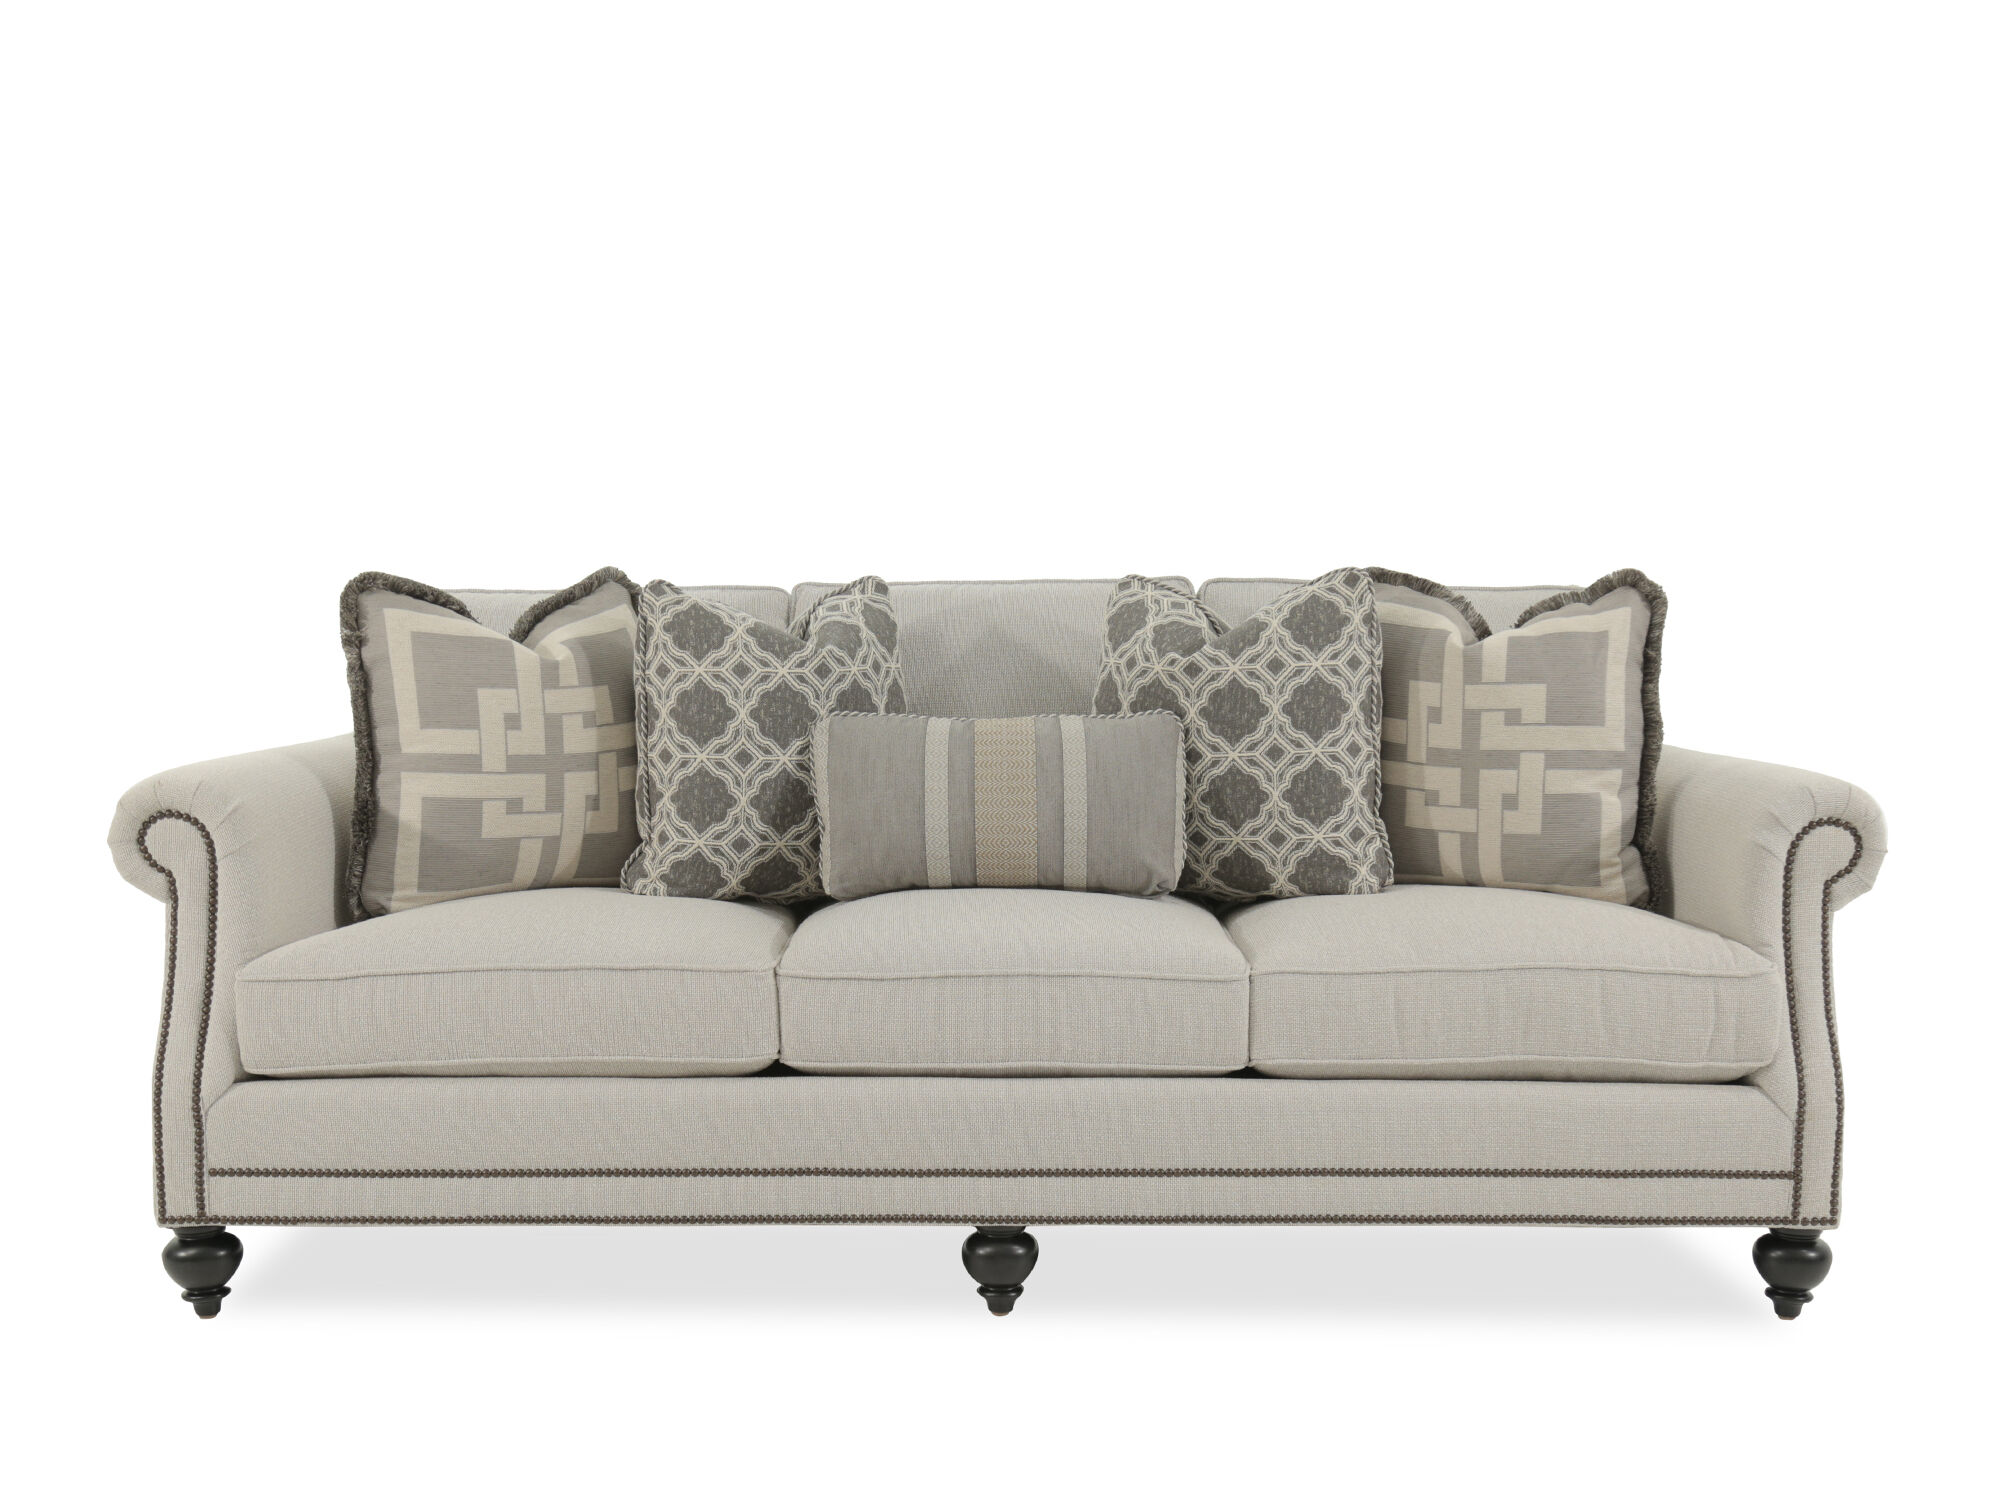 bernhardt brae sectional sofa ethan allen furniture beds beige mathis brothers